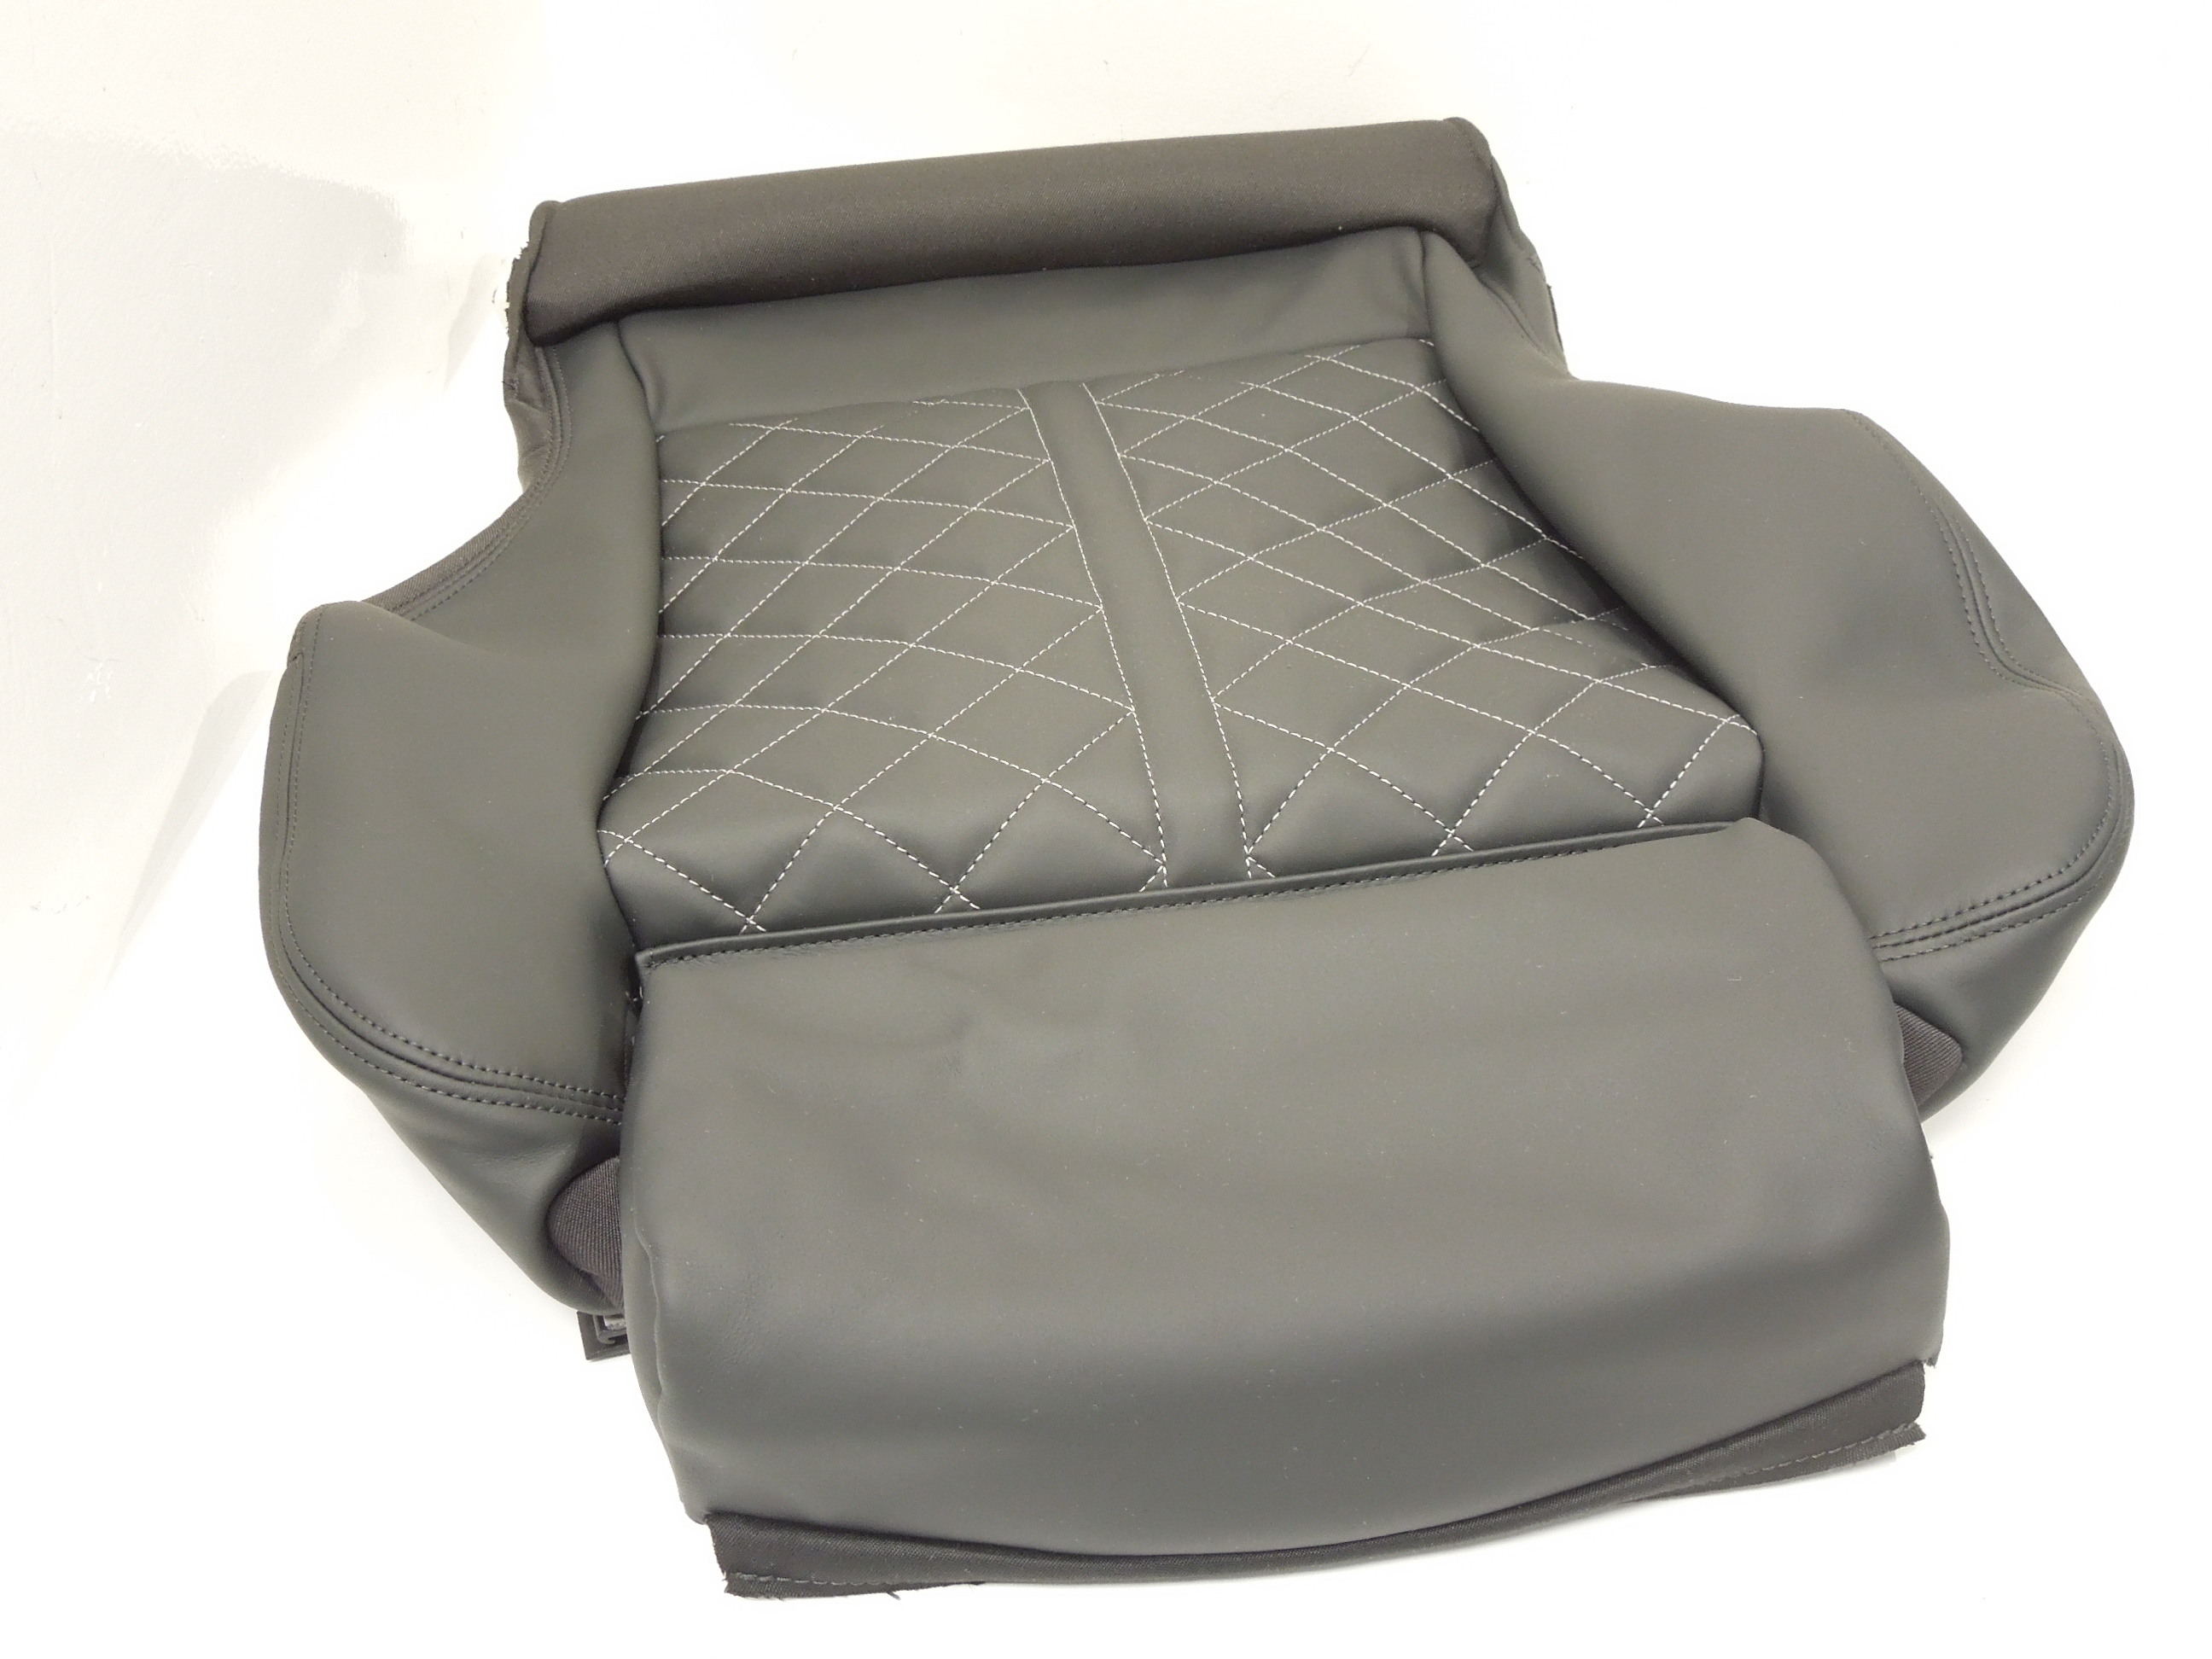 Audi-TT-TTS-8S-Leather-Seat-Cover-With-Heater-Element-New-8S0881405CEWL